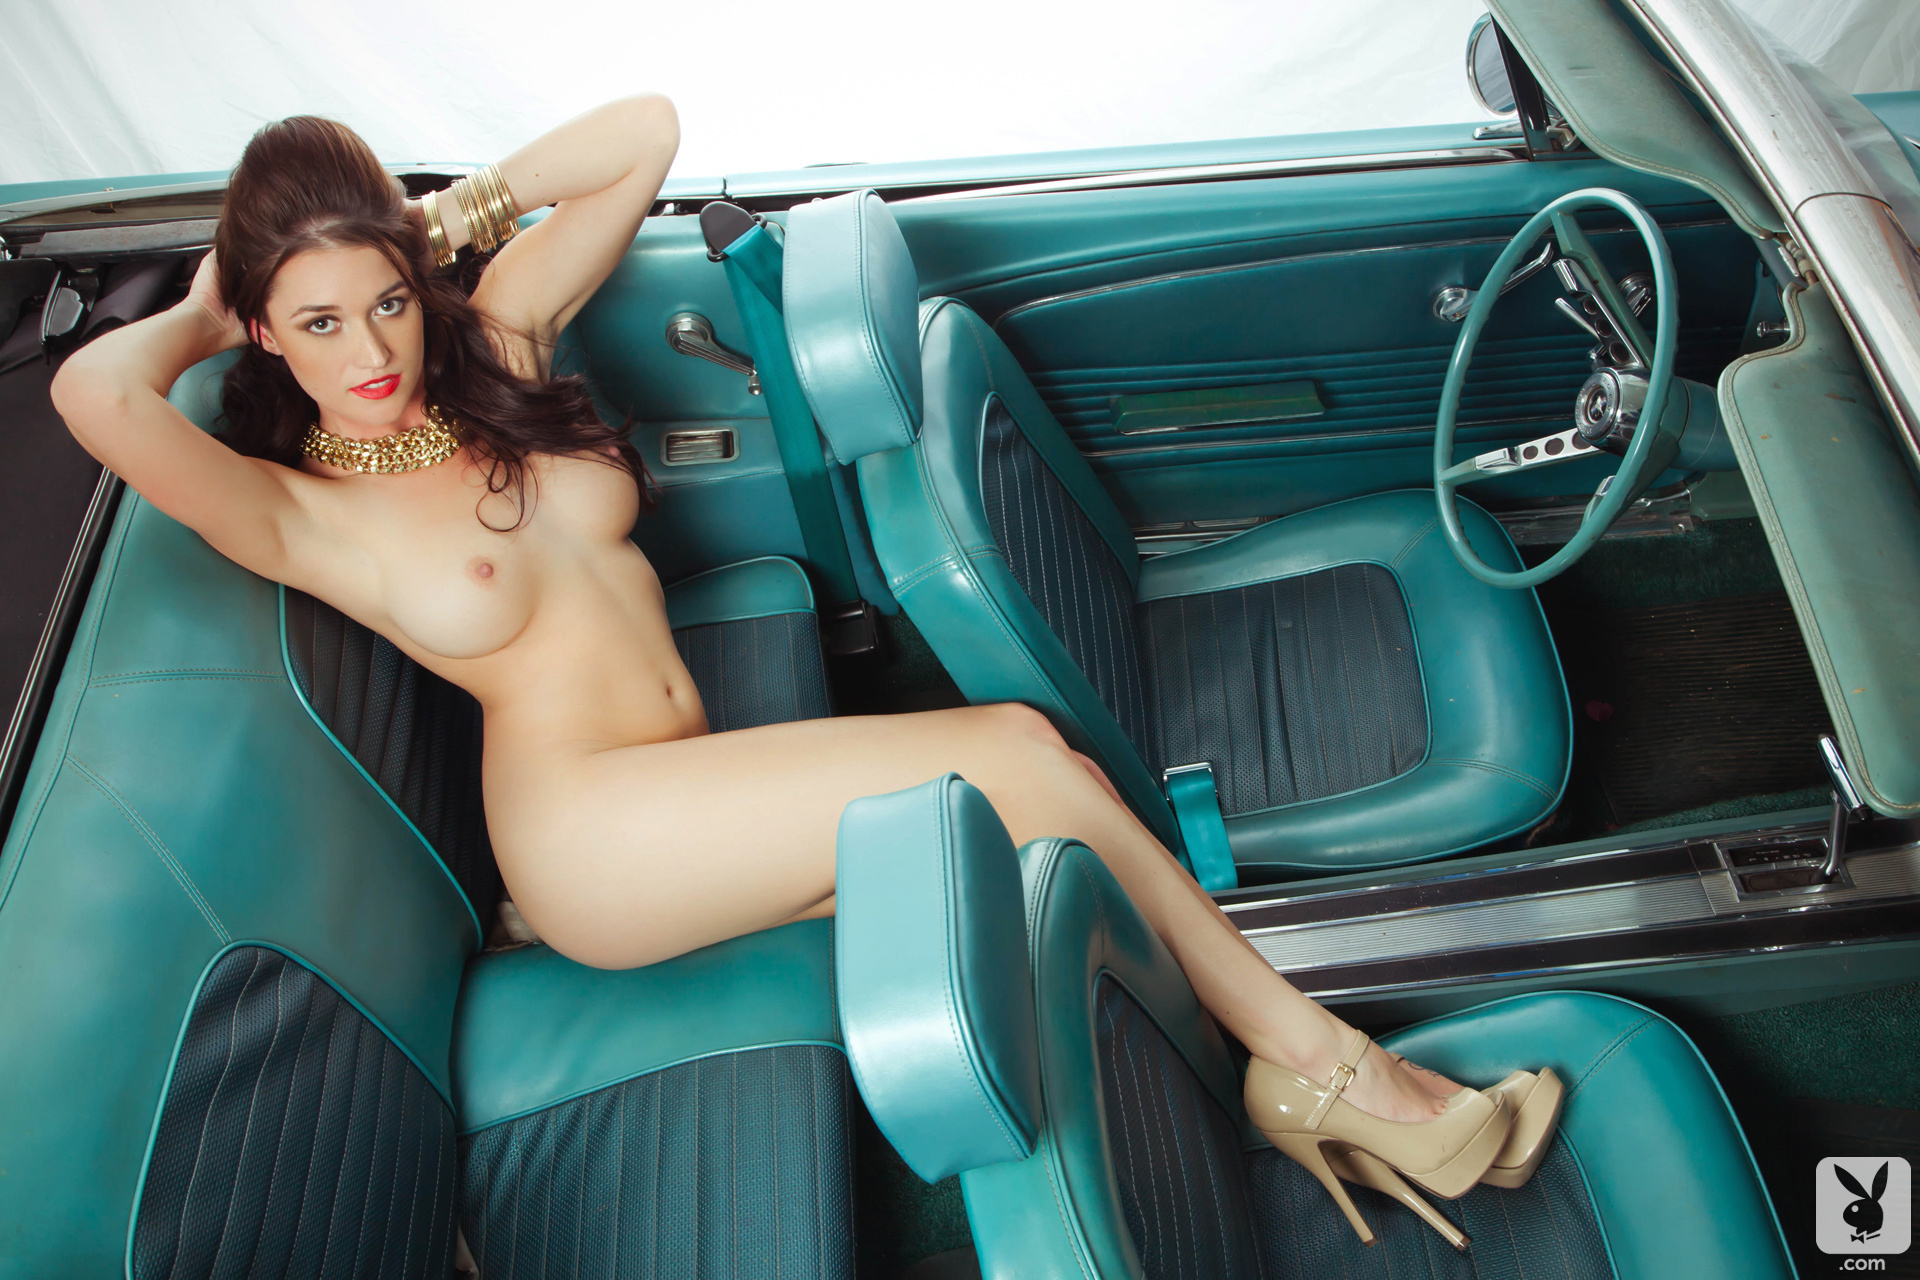 pics-of-fhm-girls-naked-by-cars-naughtiest-sluts